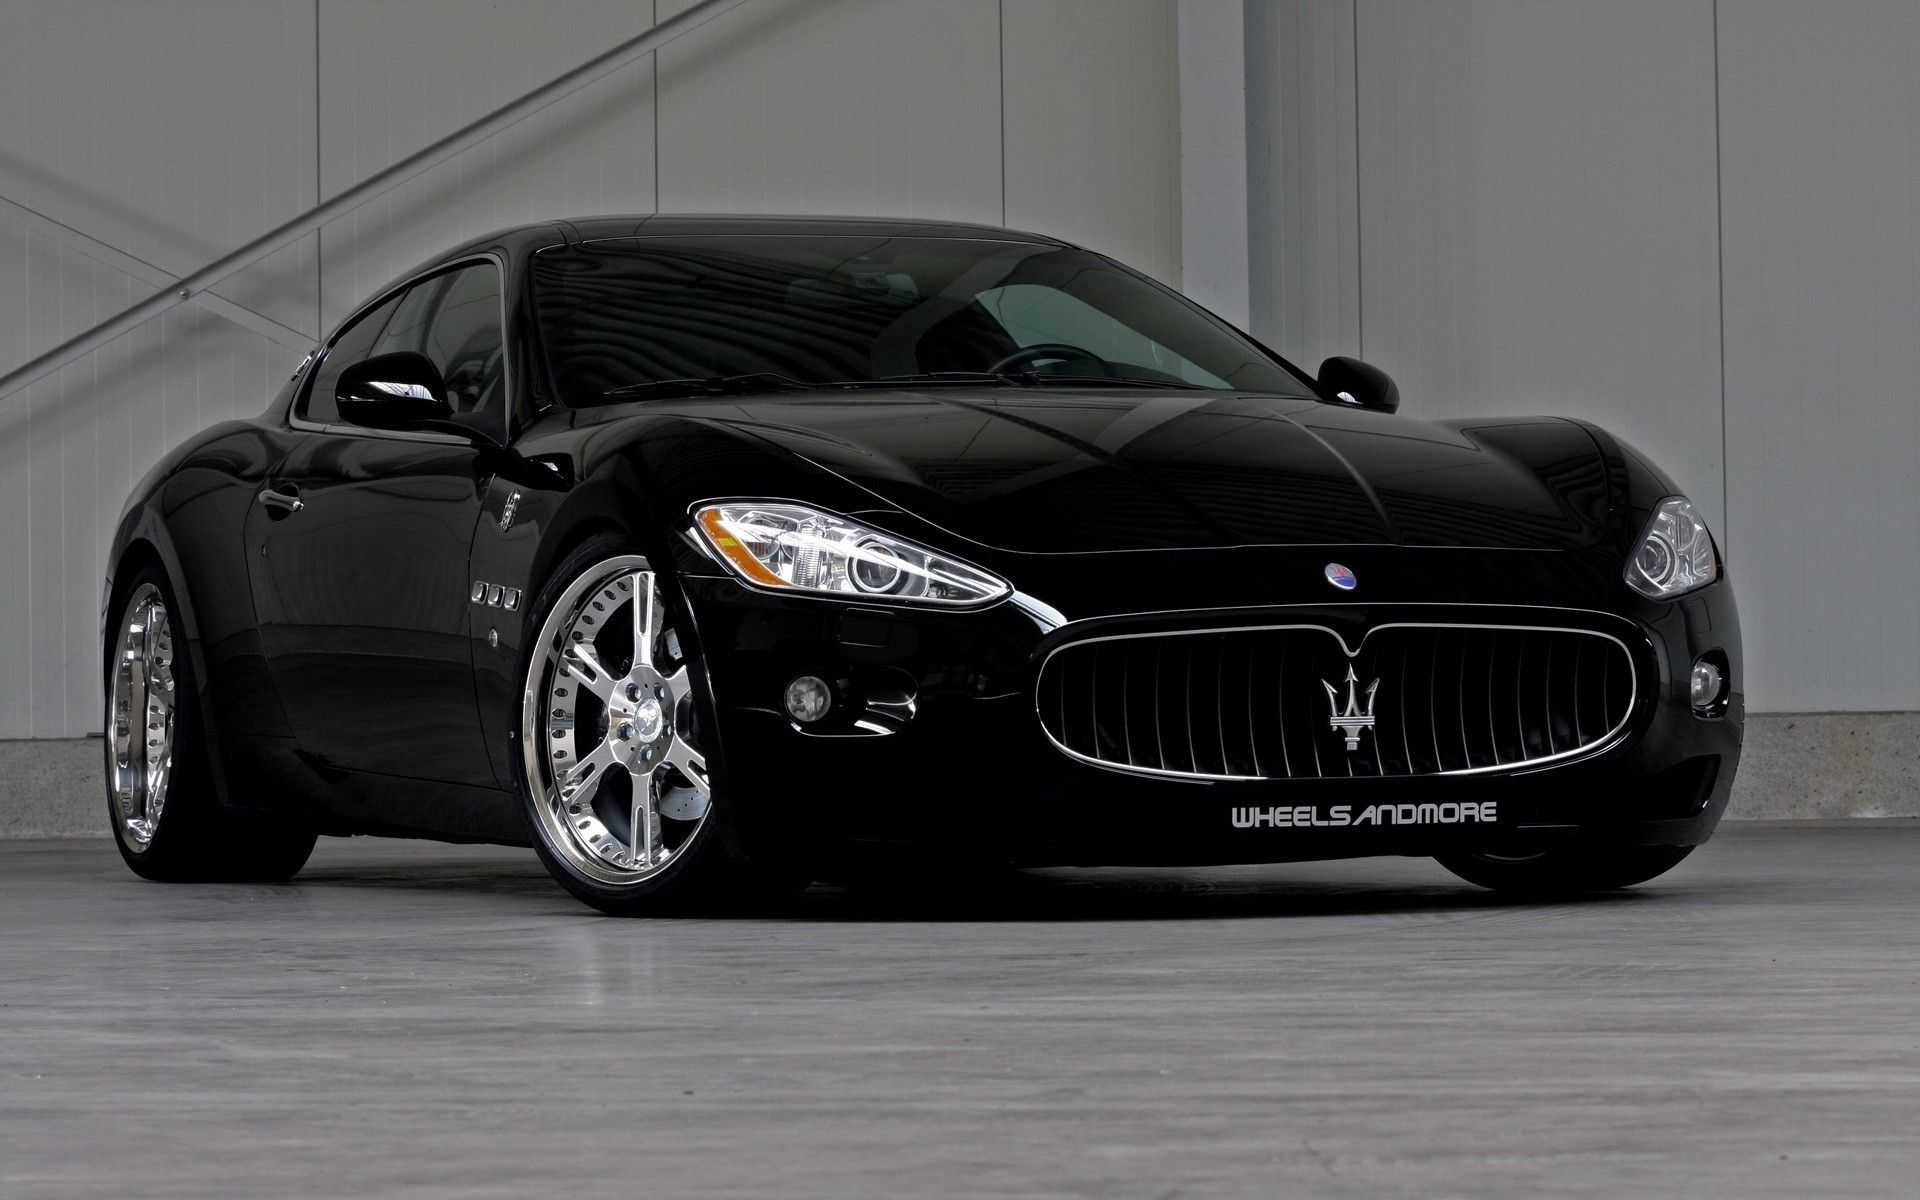 131964 download wallpaper Cars, Maserati, Stylish, Salon screensavers and pictures for free